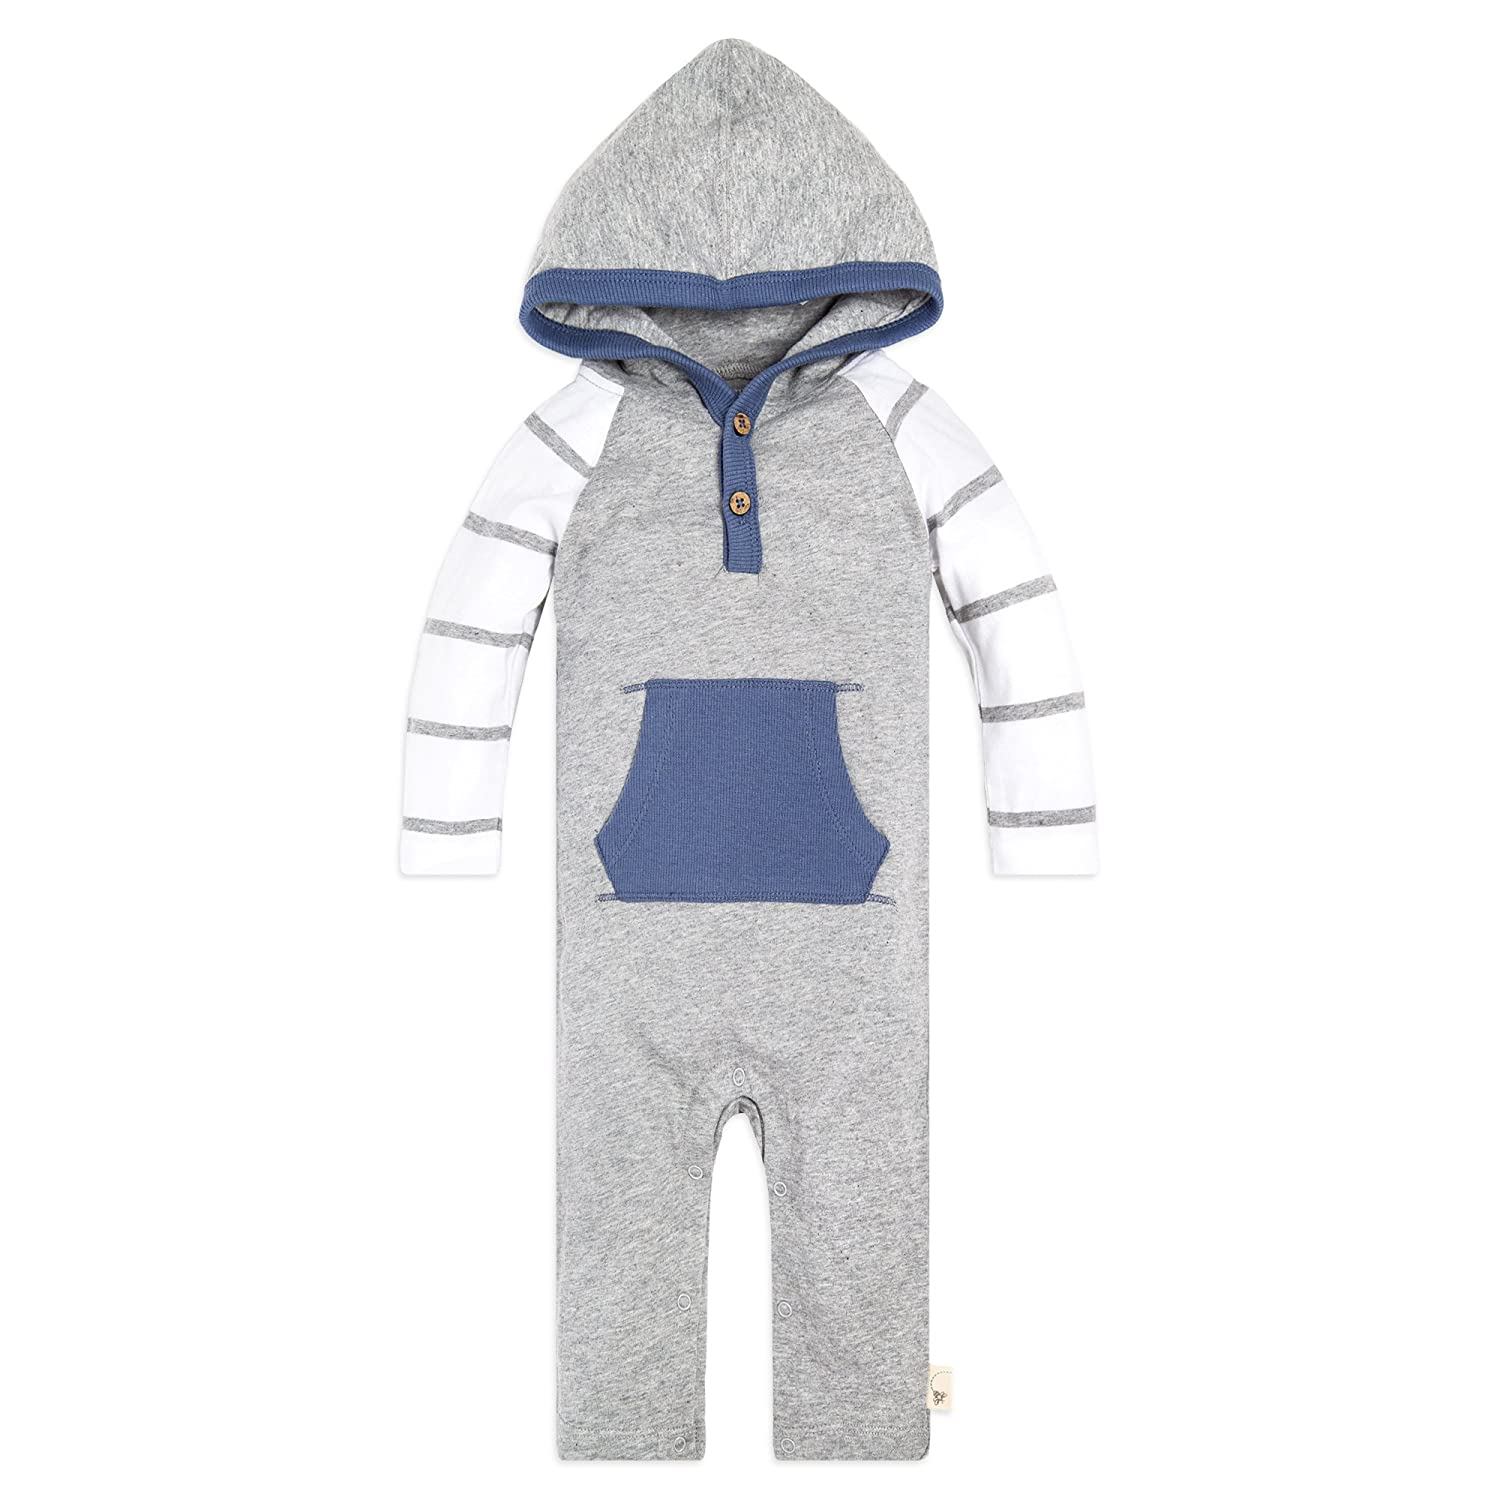 【福袋セール】 Burt's Bees Hooded Baby SLEEPWEAR ユニセックスベビー Bees B07C2GTLYS Heather Hooded Grey Varied Stripe Hooded Coverall 12 Months 12 Months|Heather Grey Varied Stripe Hooded Coverall, コスメティックリリー:b6720752 --- martinemoeykens-com.access.secure-ssl-servers.info